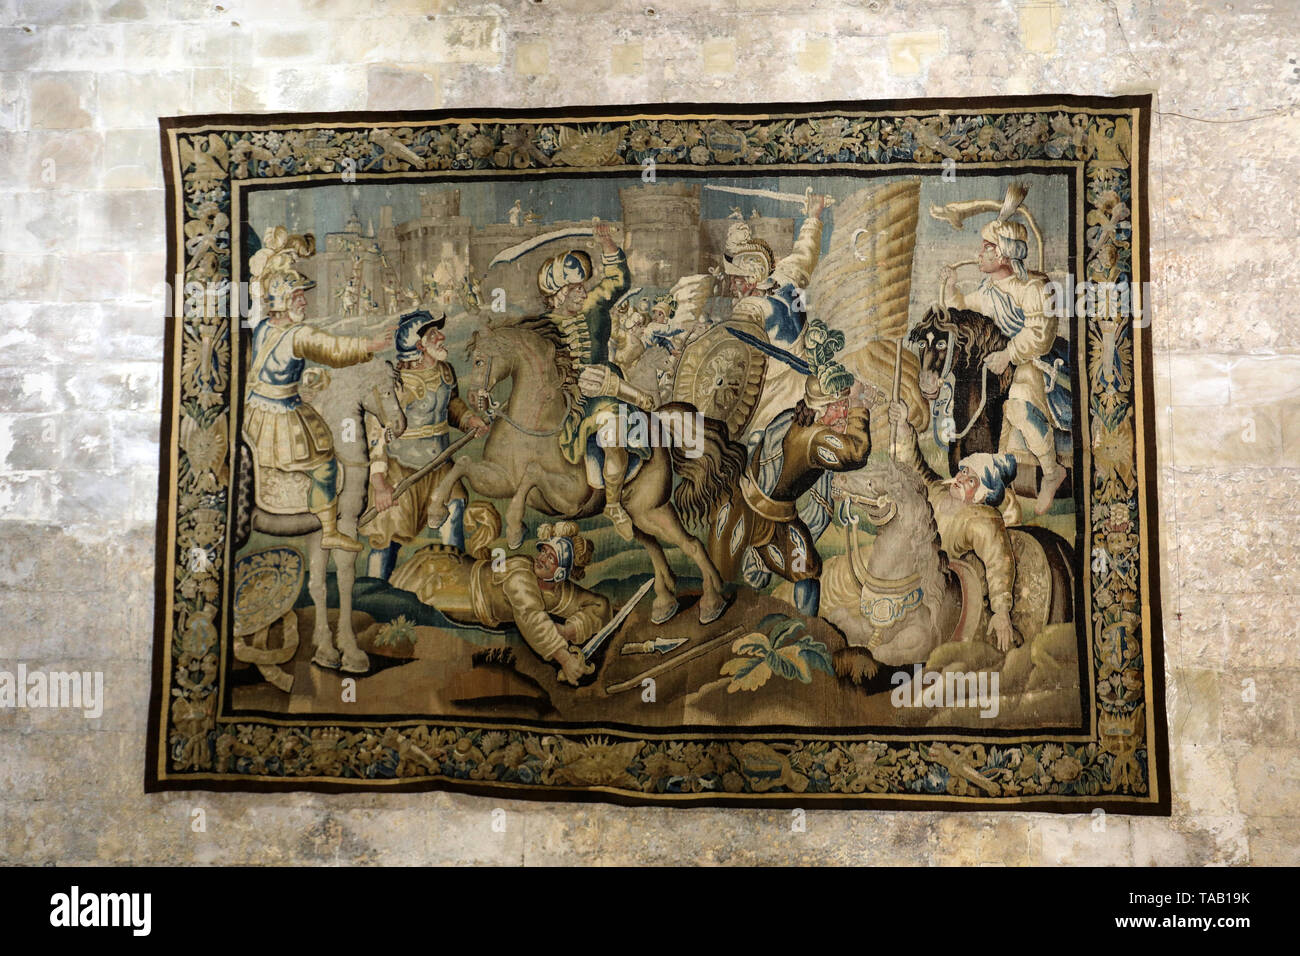 Arles, France - June 27, 2017: gallery of 17C Aubusson tapestries displayed in Saint-Trophime Cathedral show life of Godefroy de Bouillon in Jerusalem - Stock Image